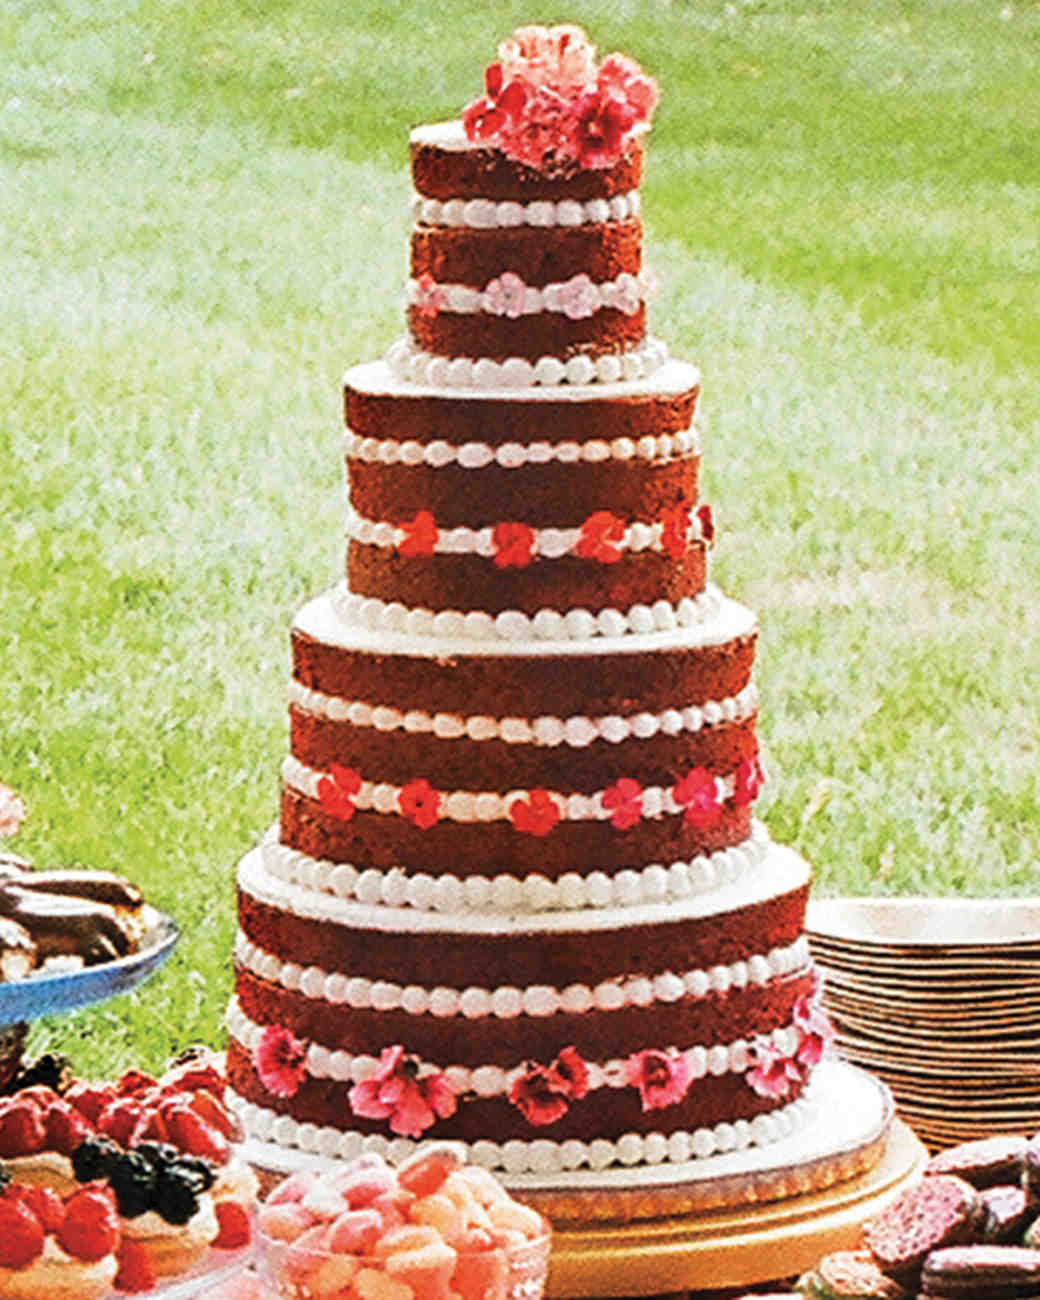 15 Red Velvet Wedding Cakes Confections Martha Stewart Weddings